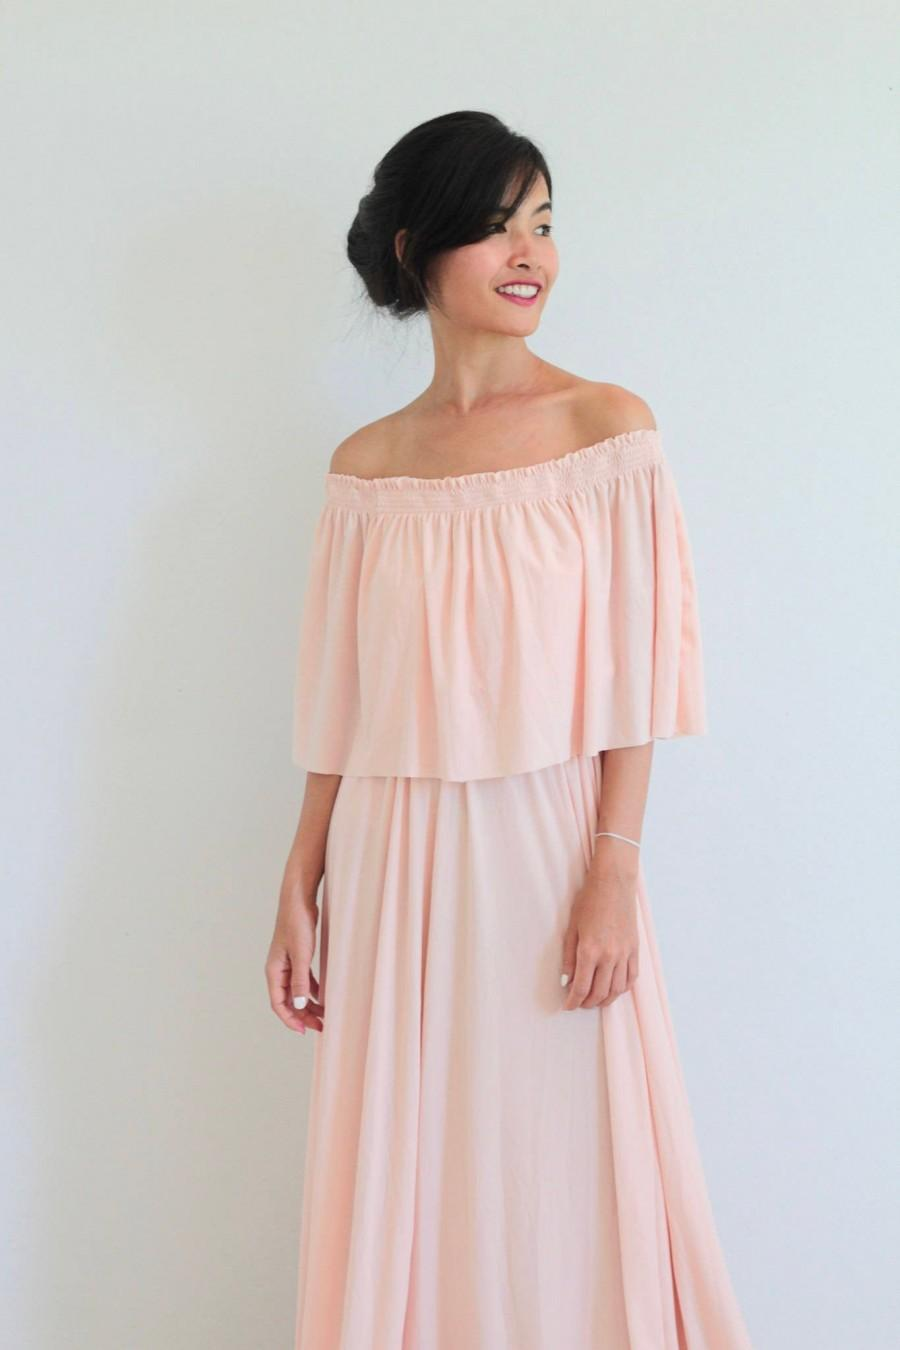 Wedding - Bridesmaid dress / Nude pink Off Shoulder With Ruffles Dress / Maxi Long Dresses/ Off Shoulder Maternity Dress